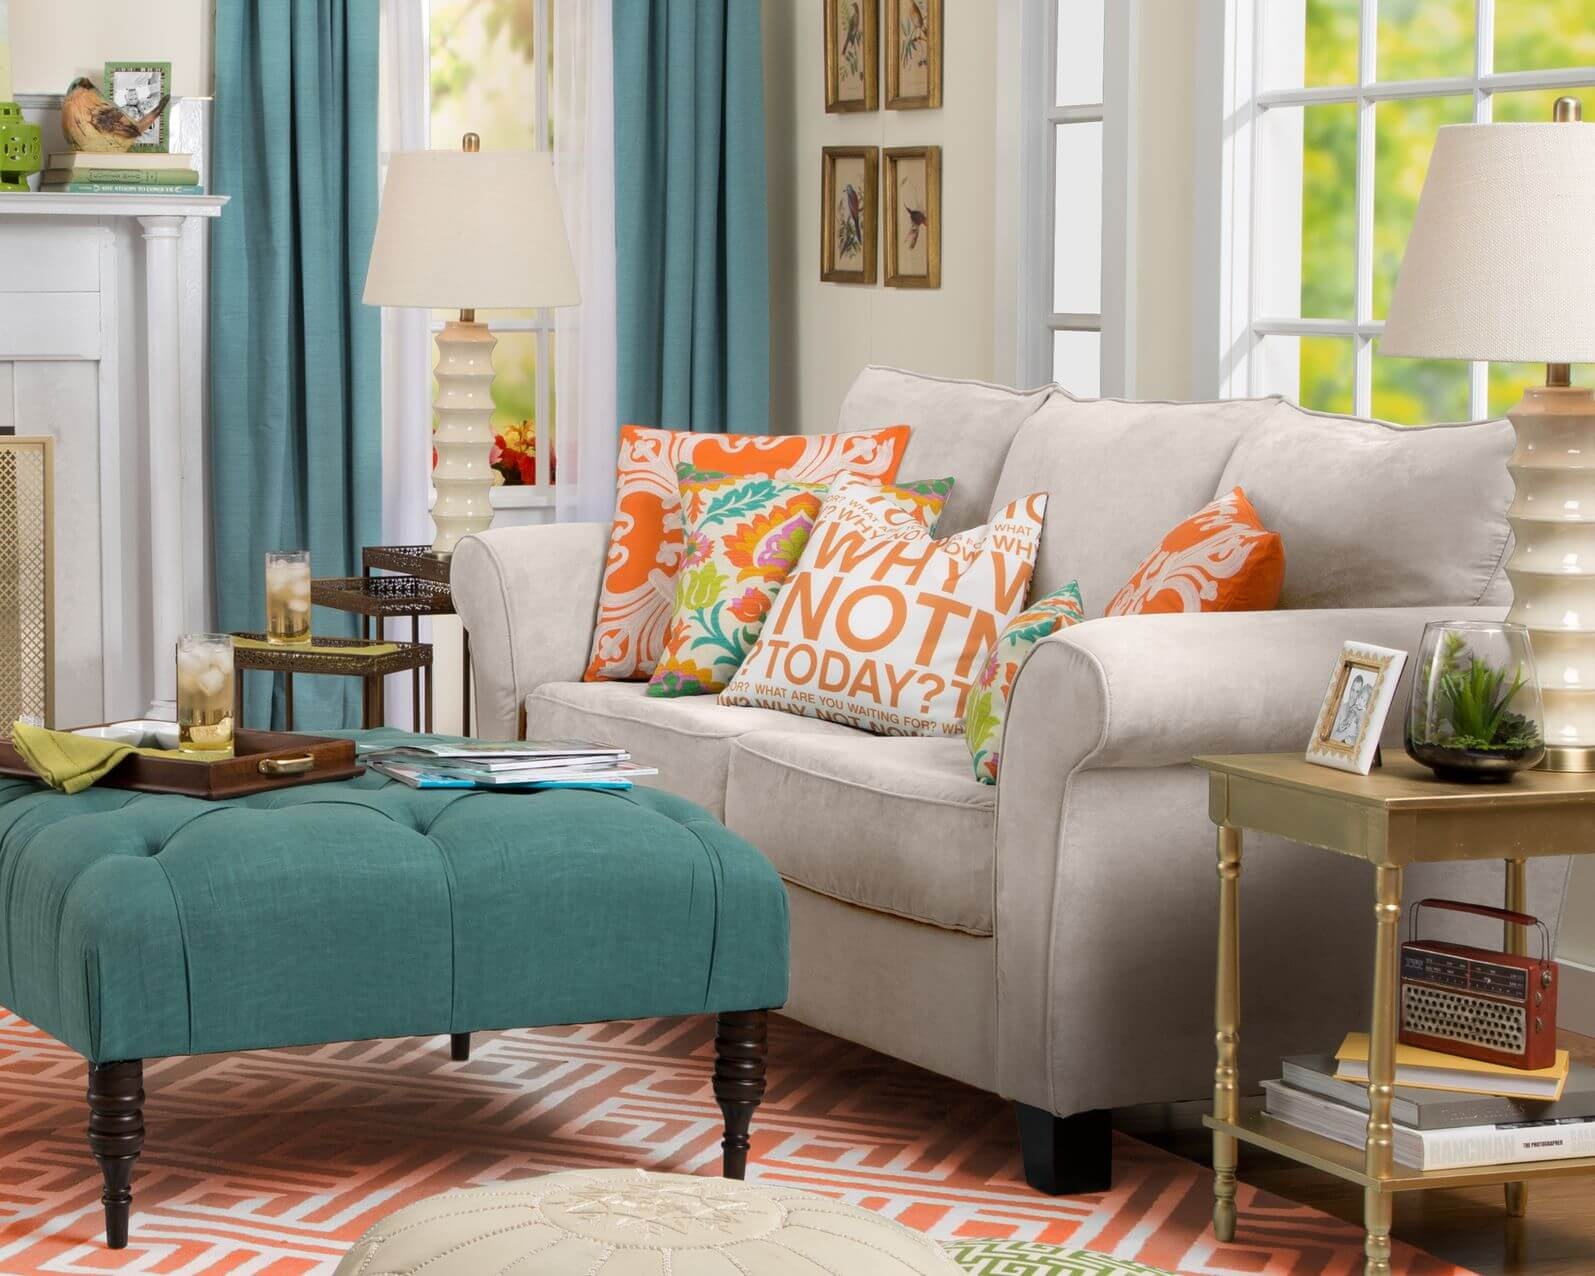 Bright, Contrasting Color Patterns Throughout This Living Room, Featuring  Neutral Toned Sofa Next To